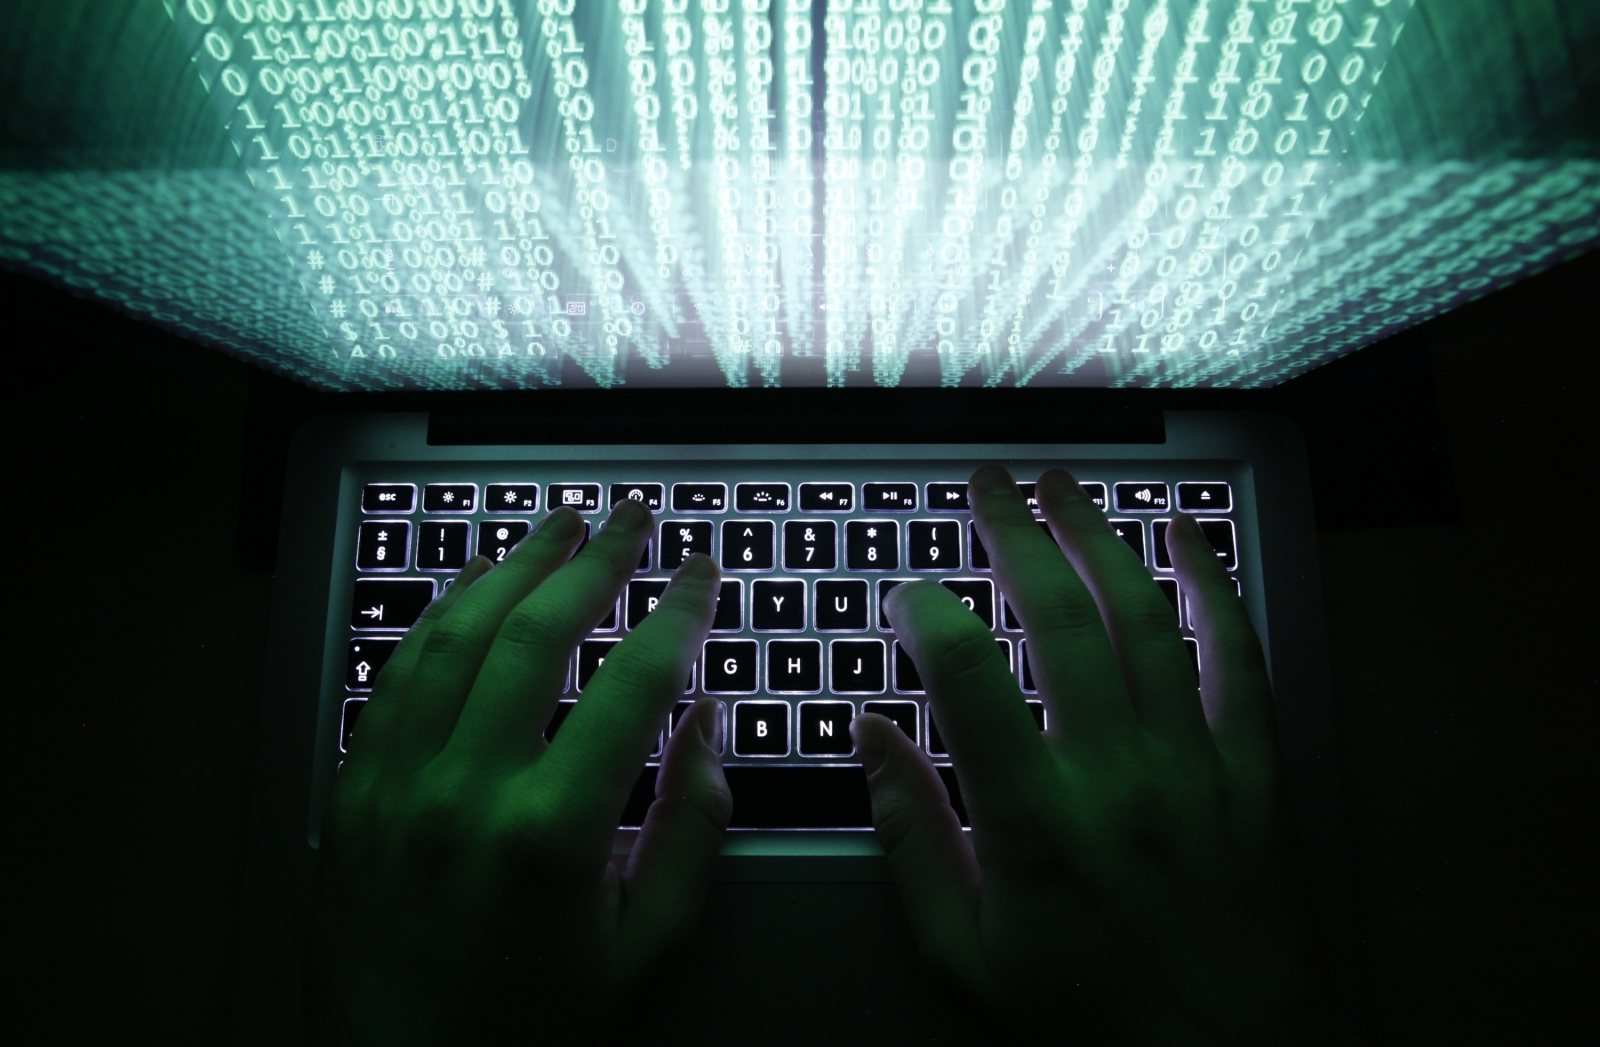 DarkHotel hackers are going after political targets instead of CEOs with new Inexsmar malware